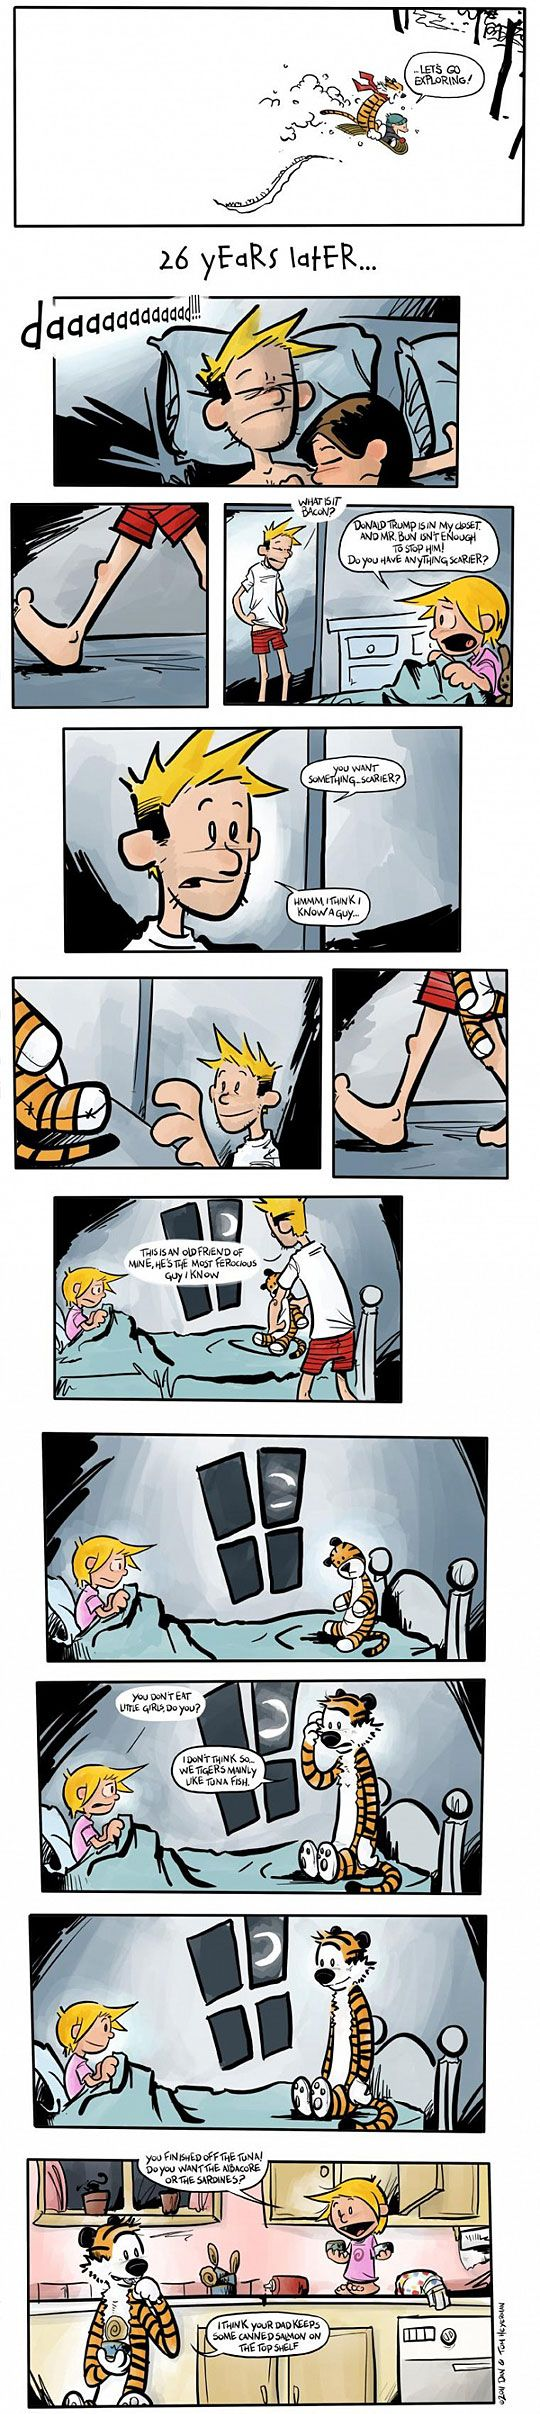 I love this so much! Calvin and Hobbes: The Next Generation!